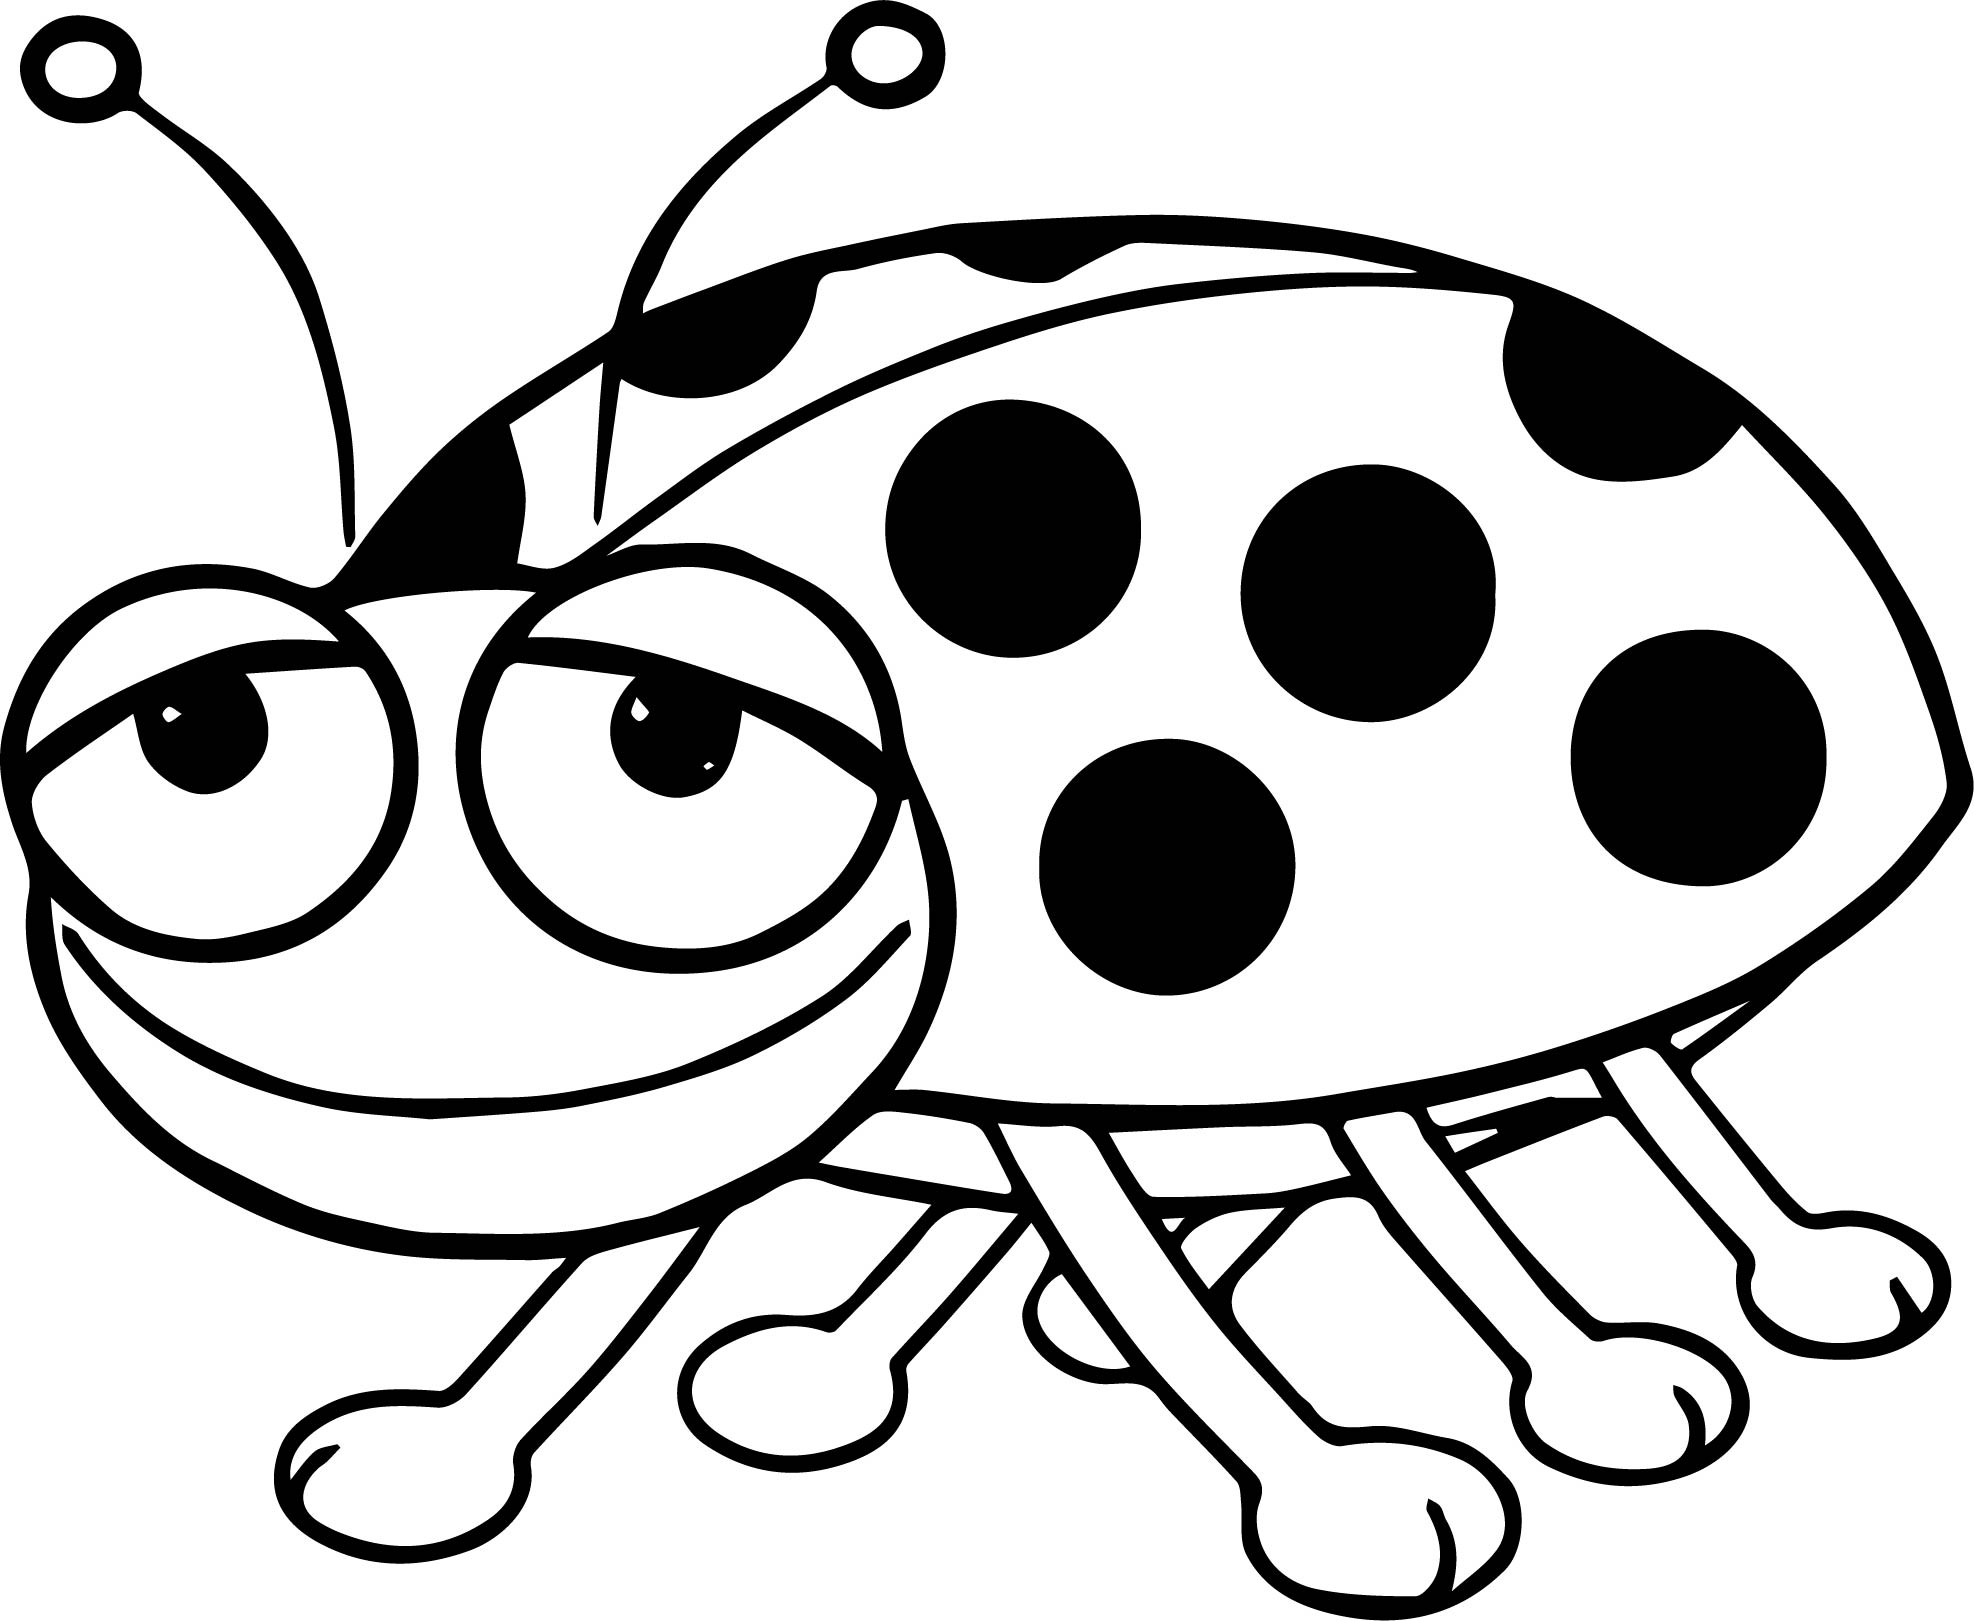 cartoon ladybug coloring pages | Cartoon Ladybug Cartoon Coloring Page | Wecoloringpage.com